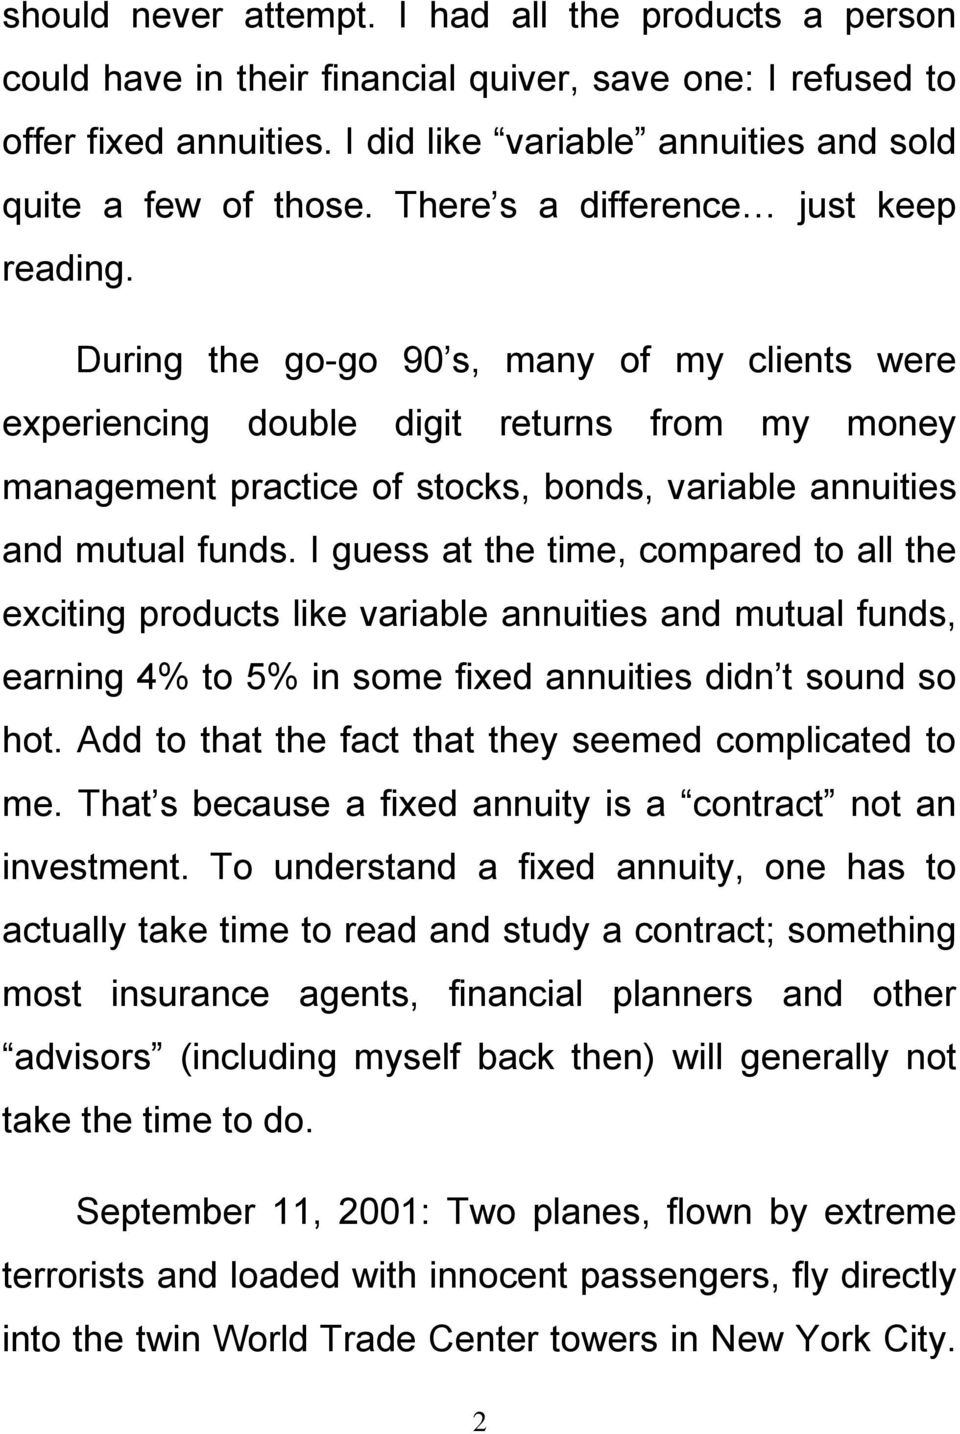 During the go-go 90 s, many of my clients were experiencing double digit returns from my money management practice of stocks, bonds, variable annuities and mutual funds.